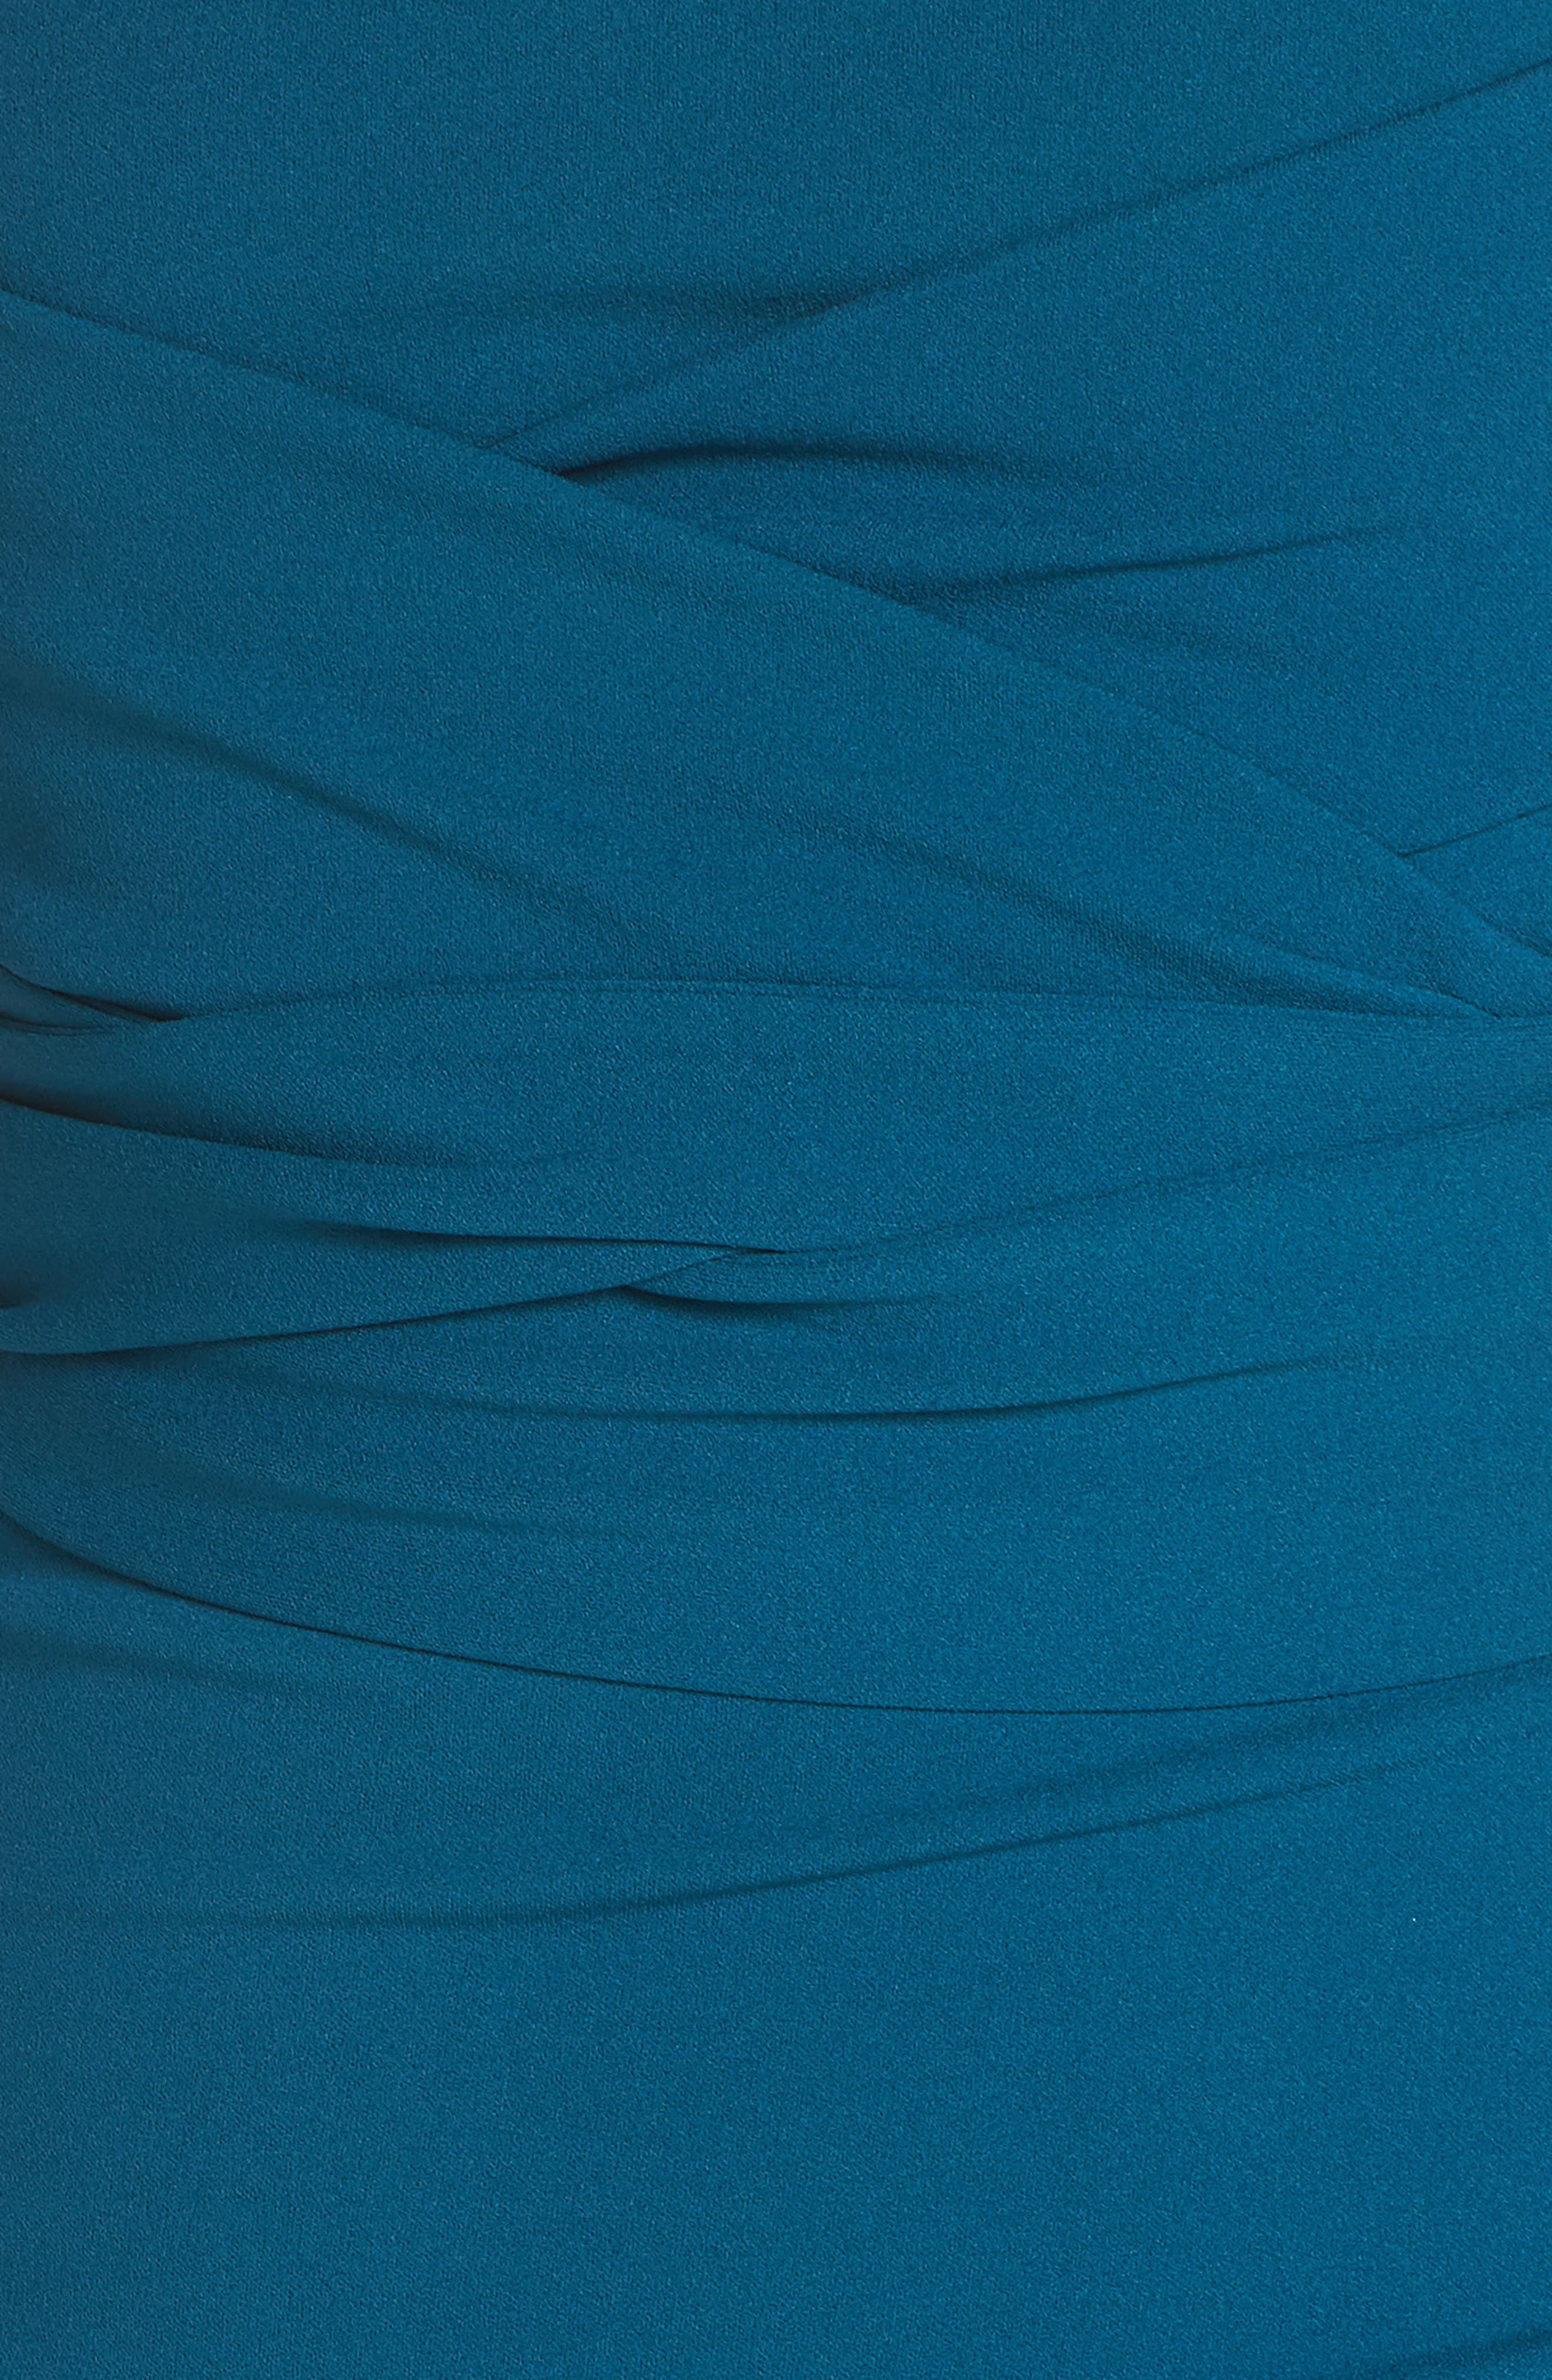 Own the Night Strapless Maxi Dress,                             Alternate thumbnail 6, color,                             TURQUOISE